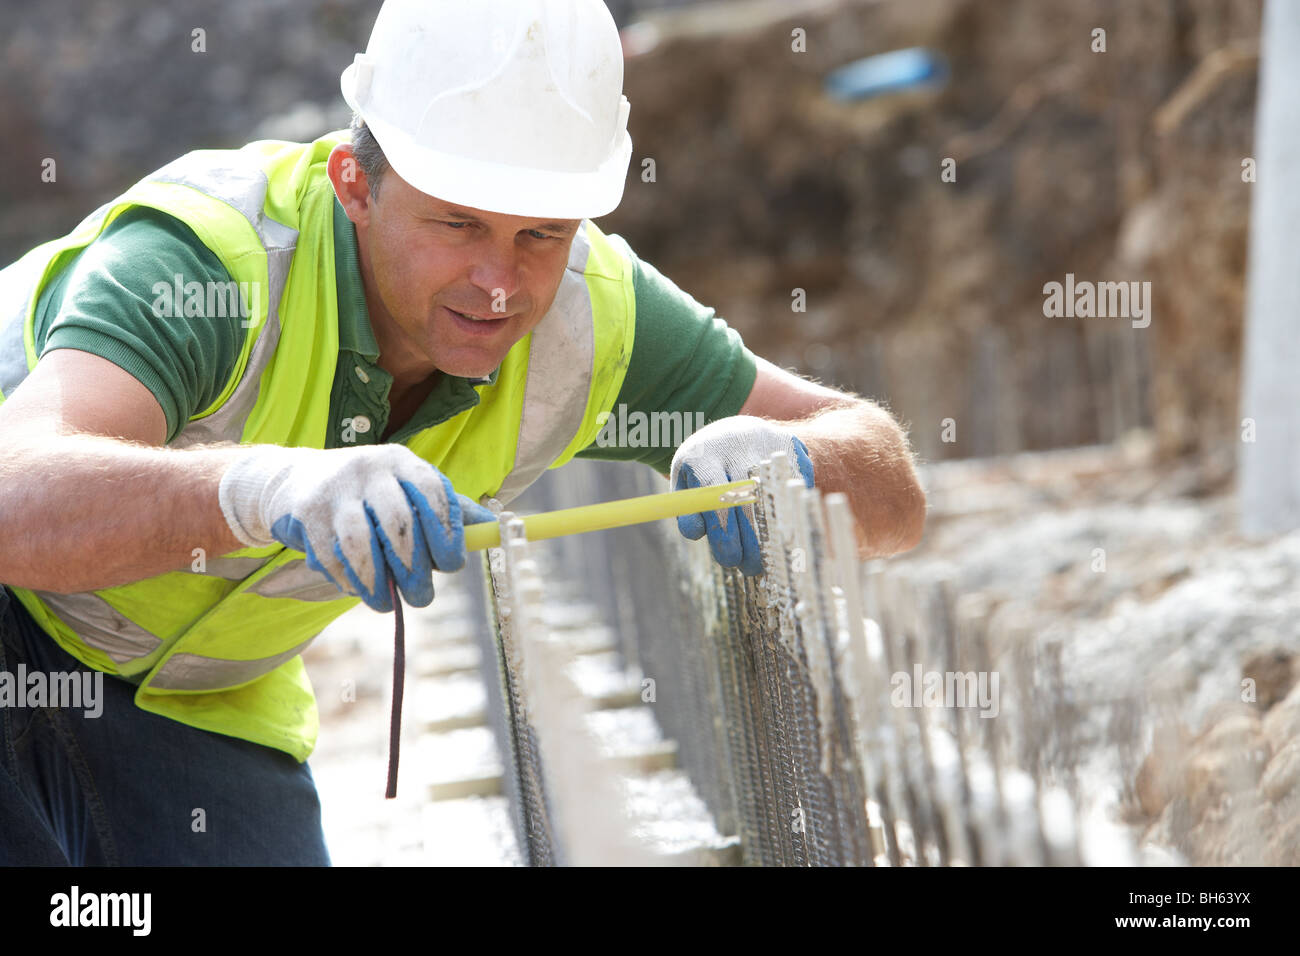 Construction Worker Holding Measure - Stock Image